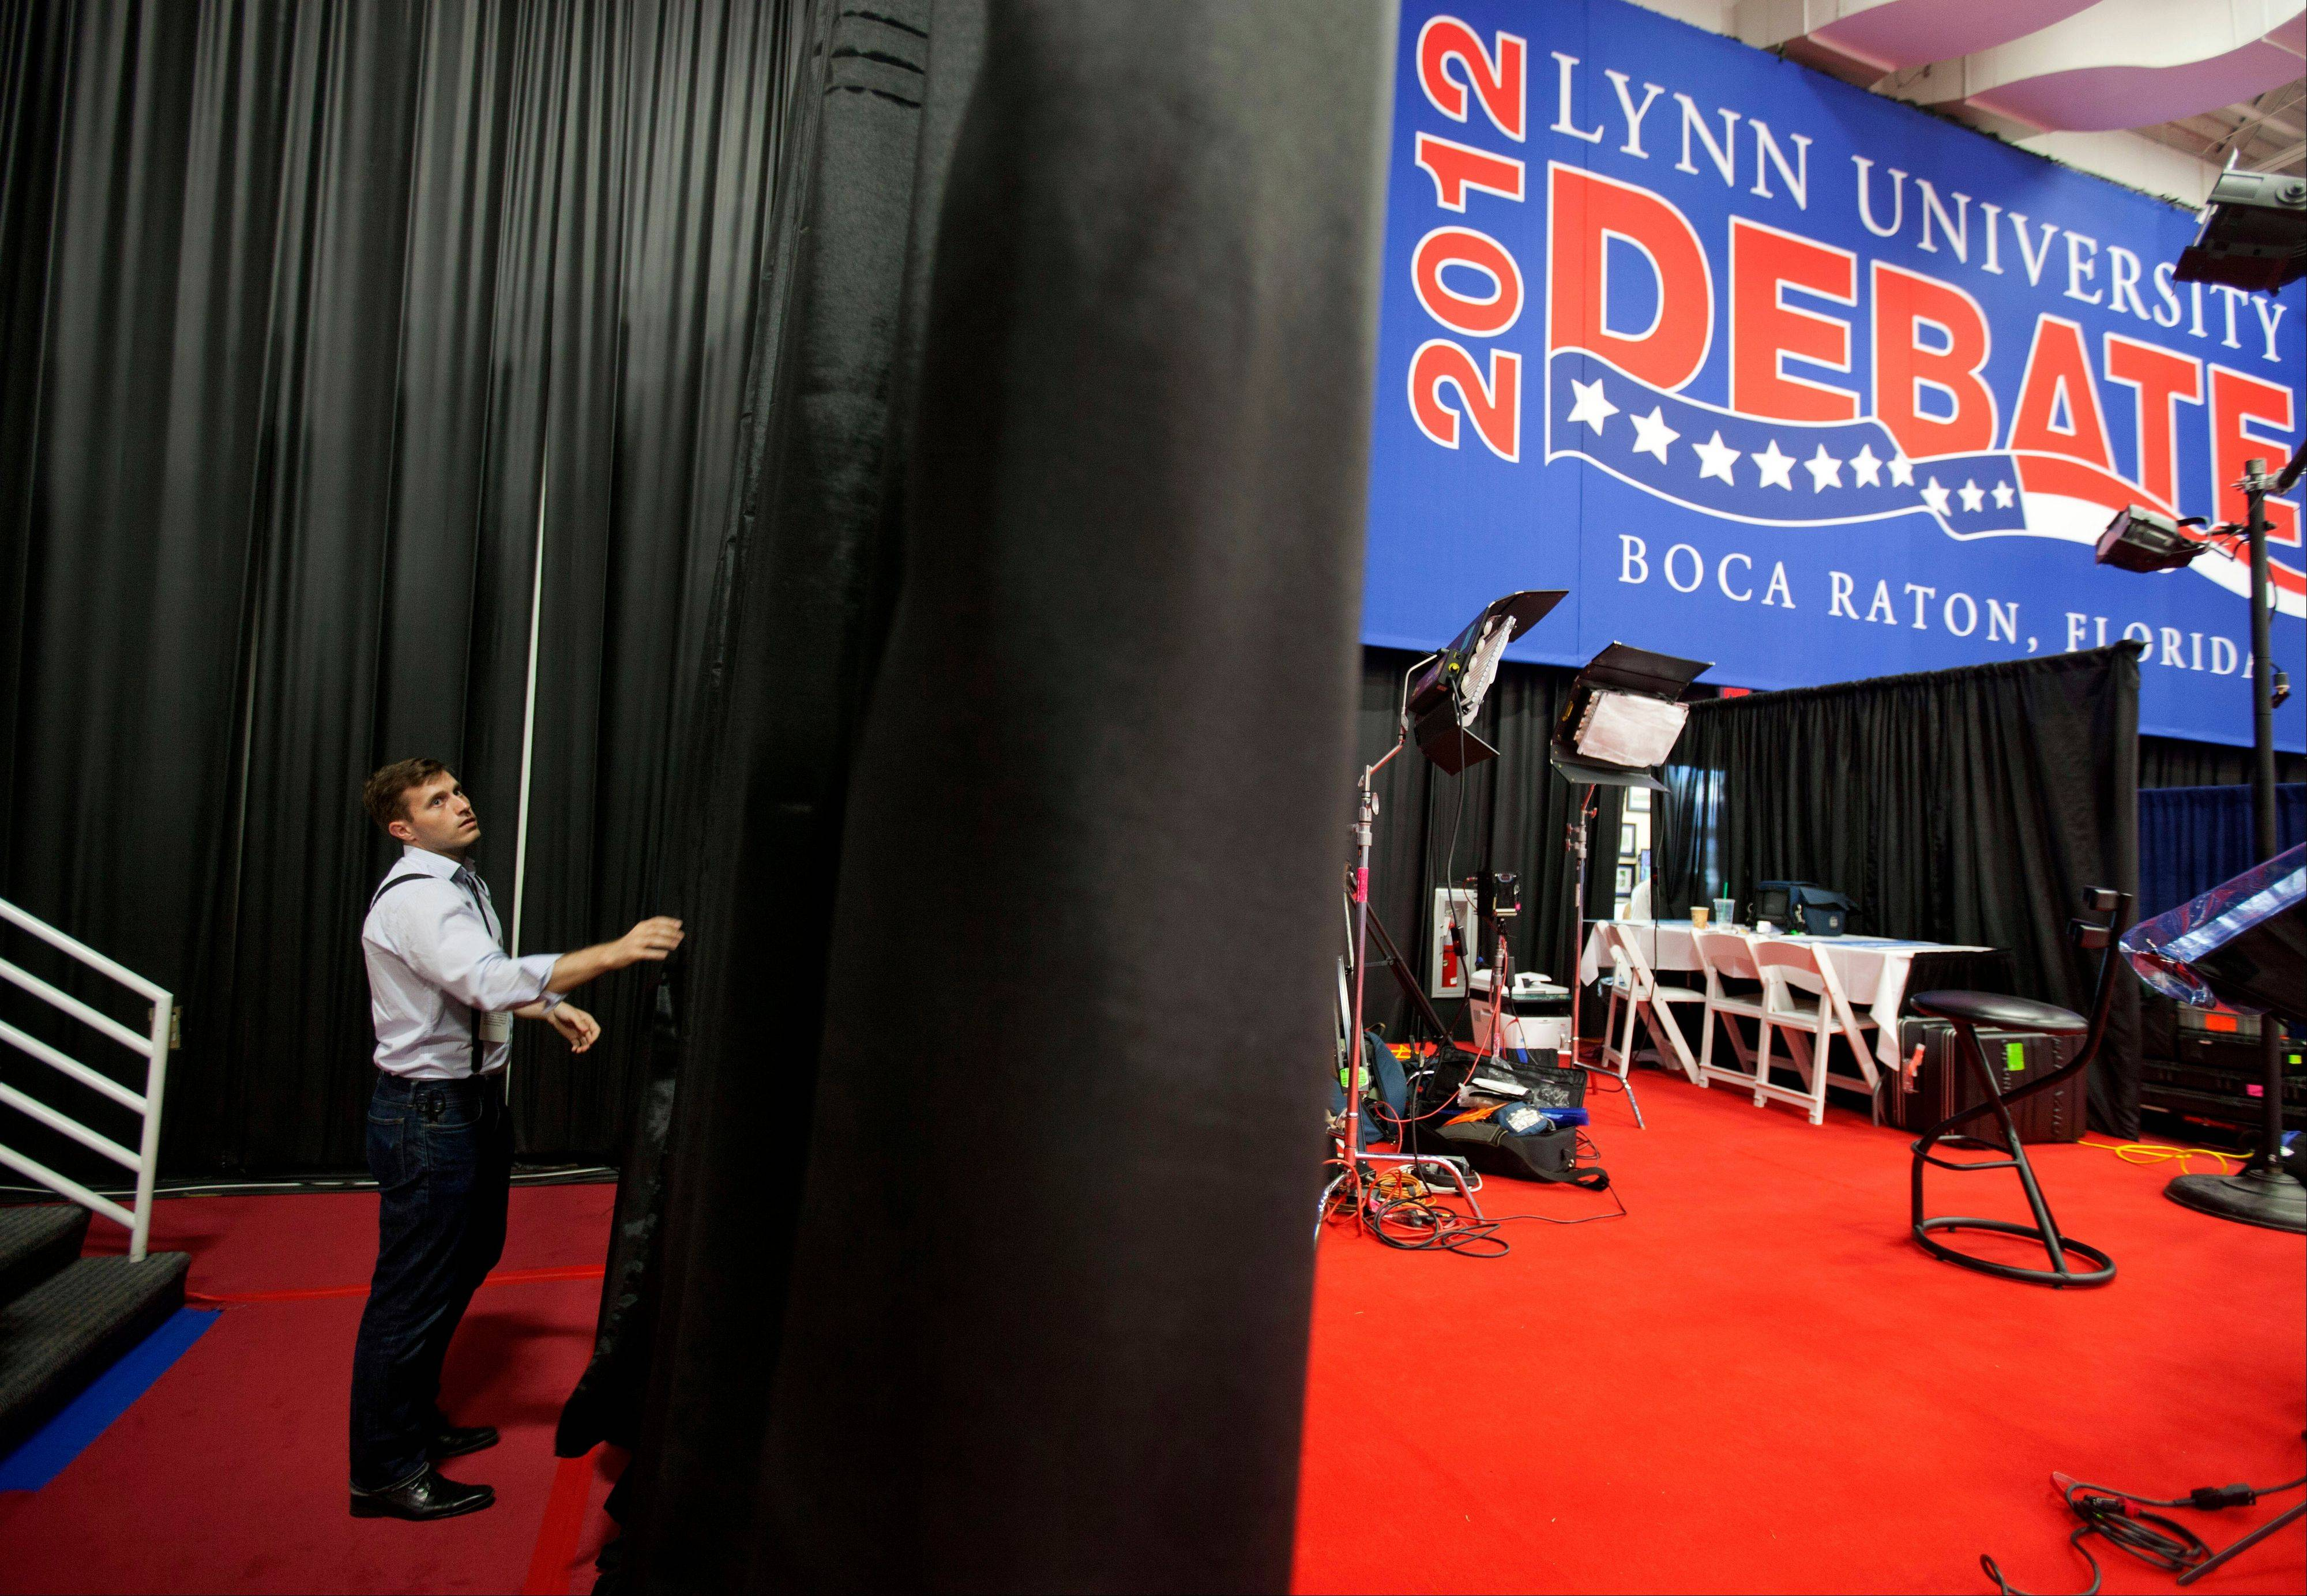 A campaign worker works on the set for the spin corner for the President Barack Obama campaign in the media center ahead of Monday�s presidential debate between Republican presidential candidate, former Massachusetts Gov. Mitt Romney and Obama, Sunday at Lynn University in Boca Raton, Fla.